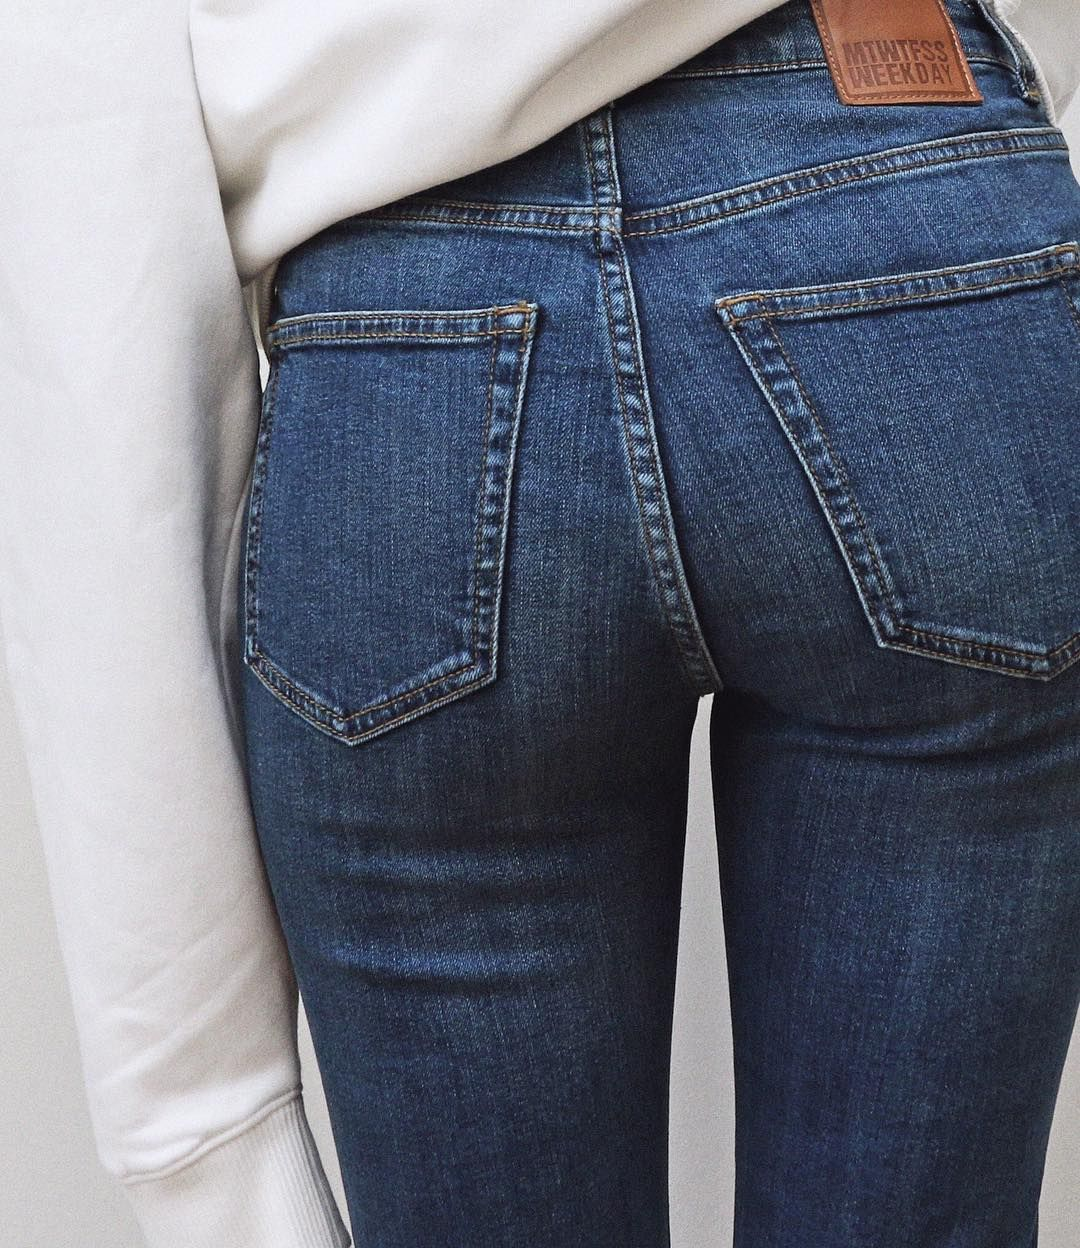 f8b1b5572d28ad Weekday Way Jeans @weekday_stores | Weekday Moments | Fashion ...